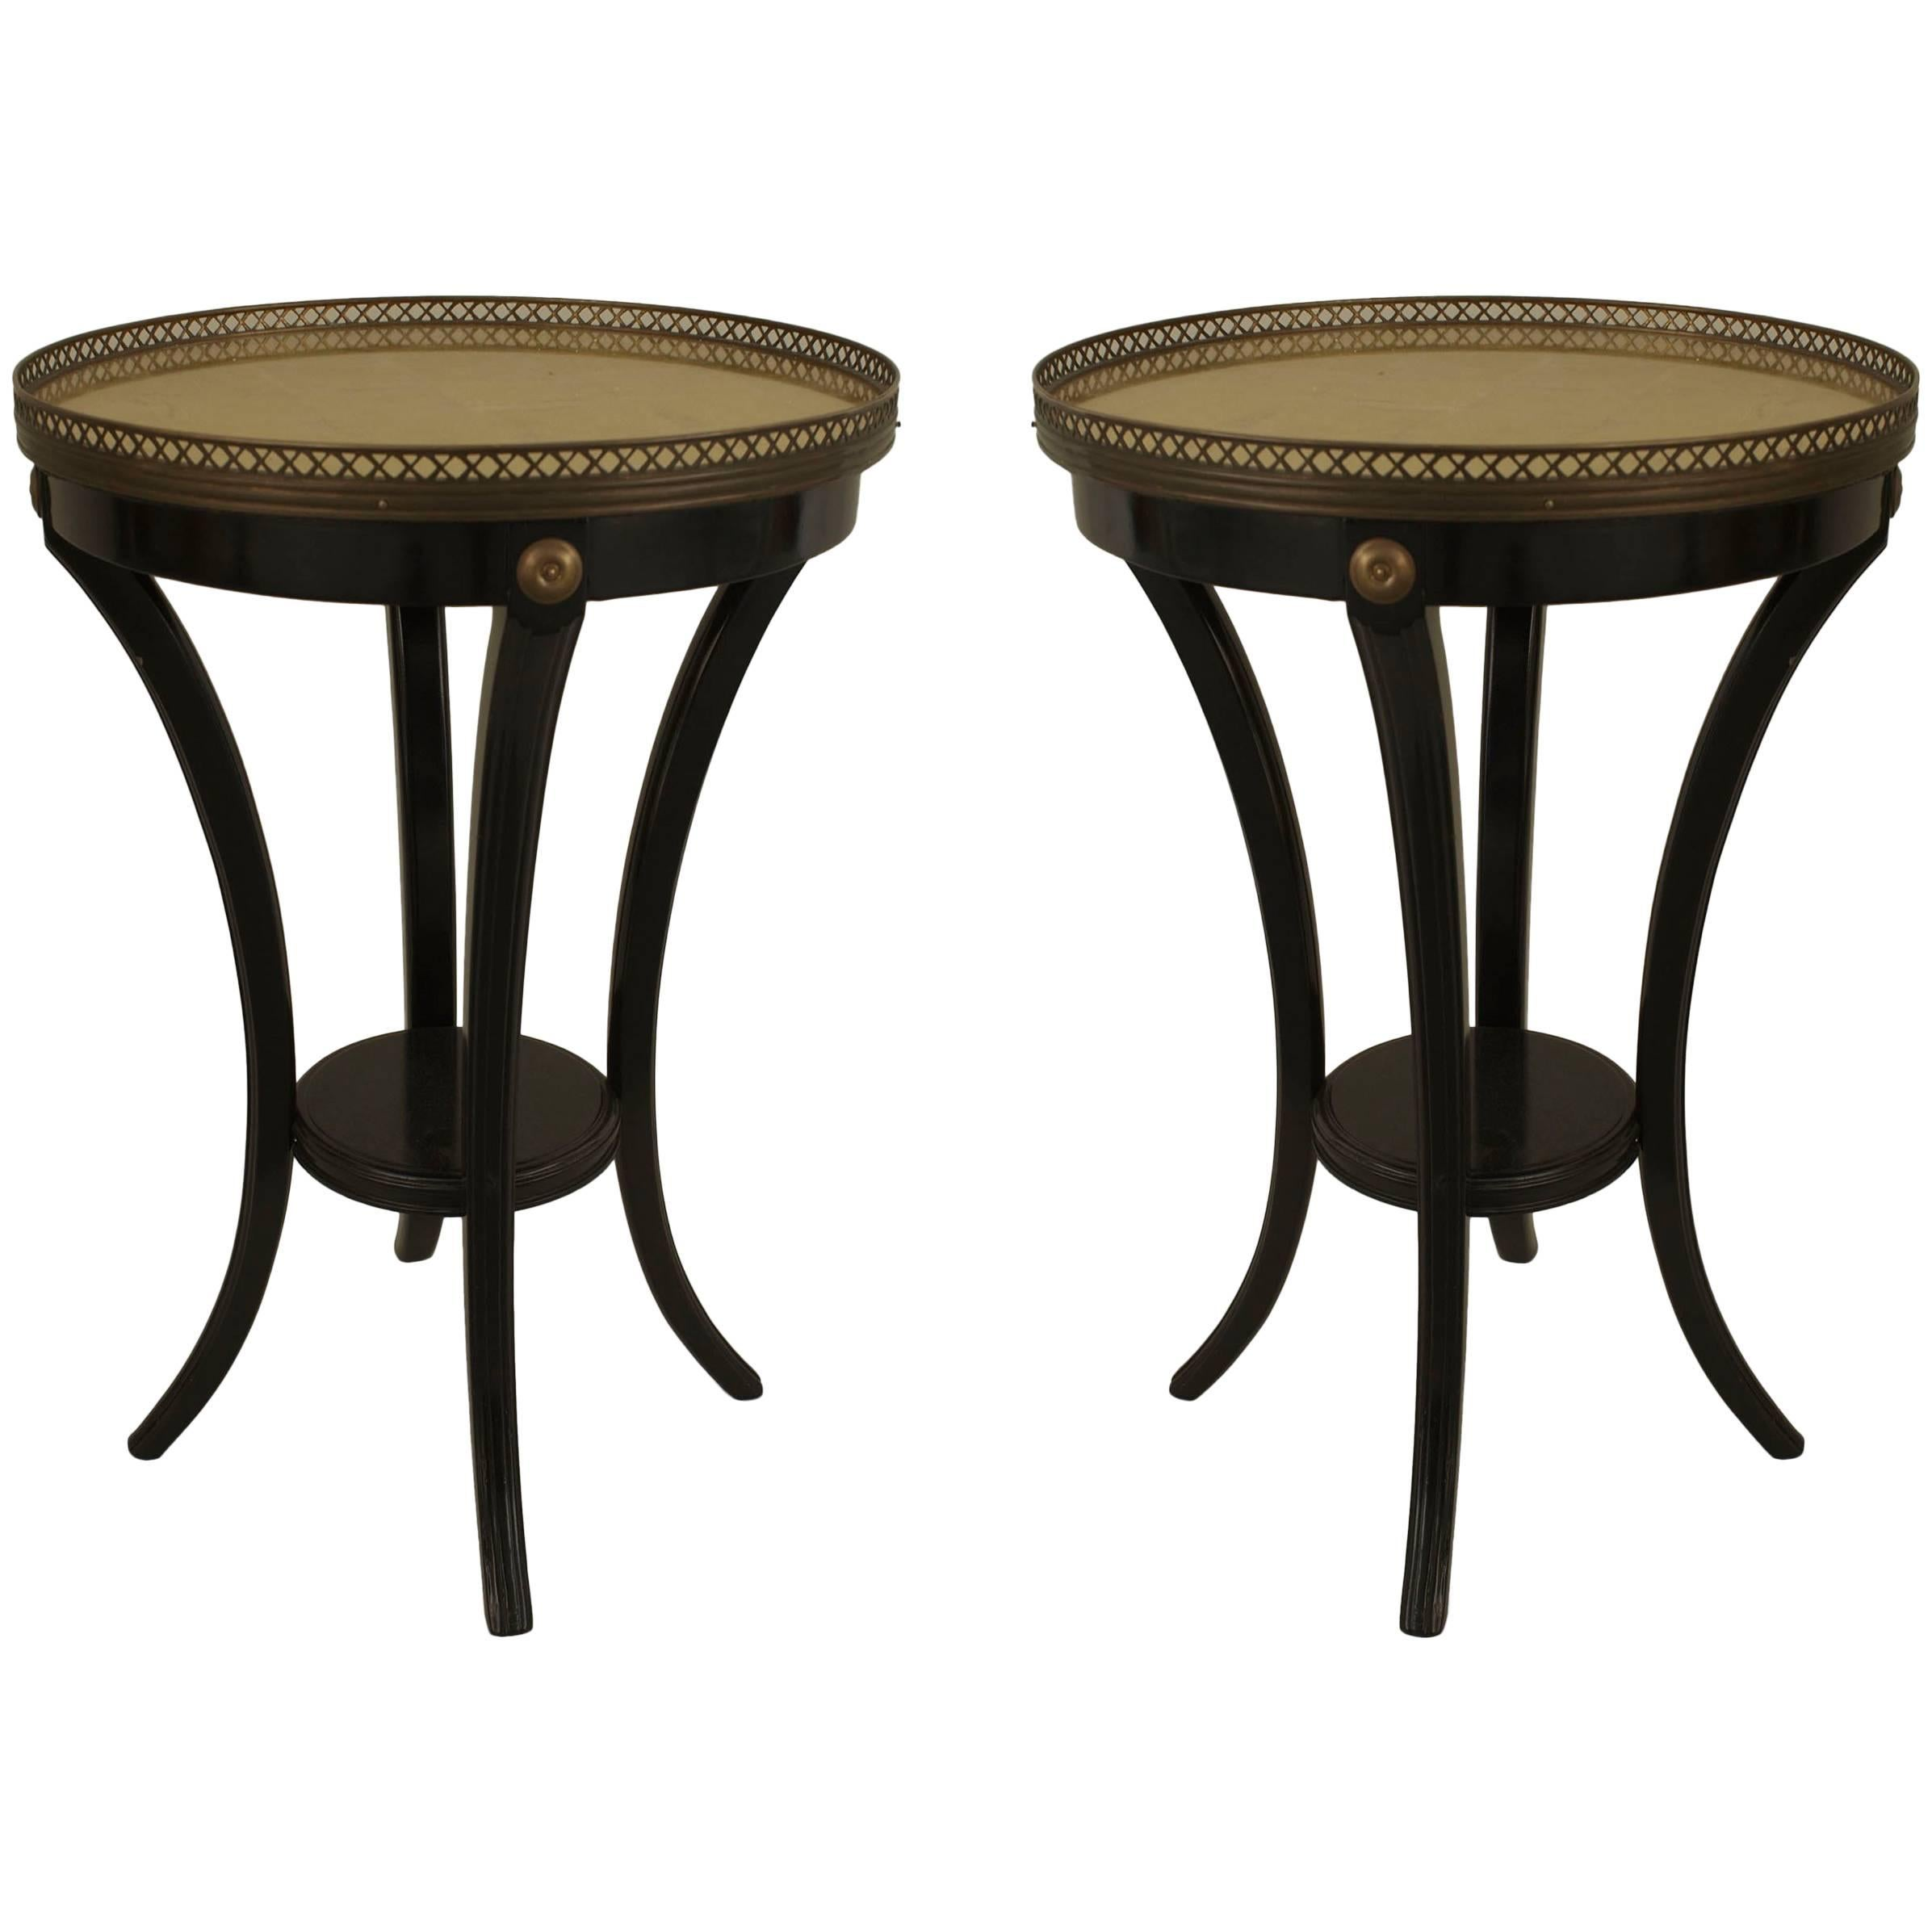 """Pair of French 1940s """"Louis XVI Style"""" Ebonized End Tables, by Jansen"""